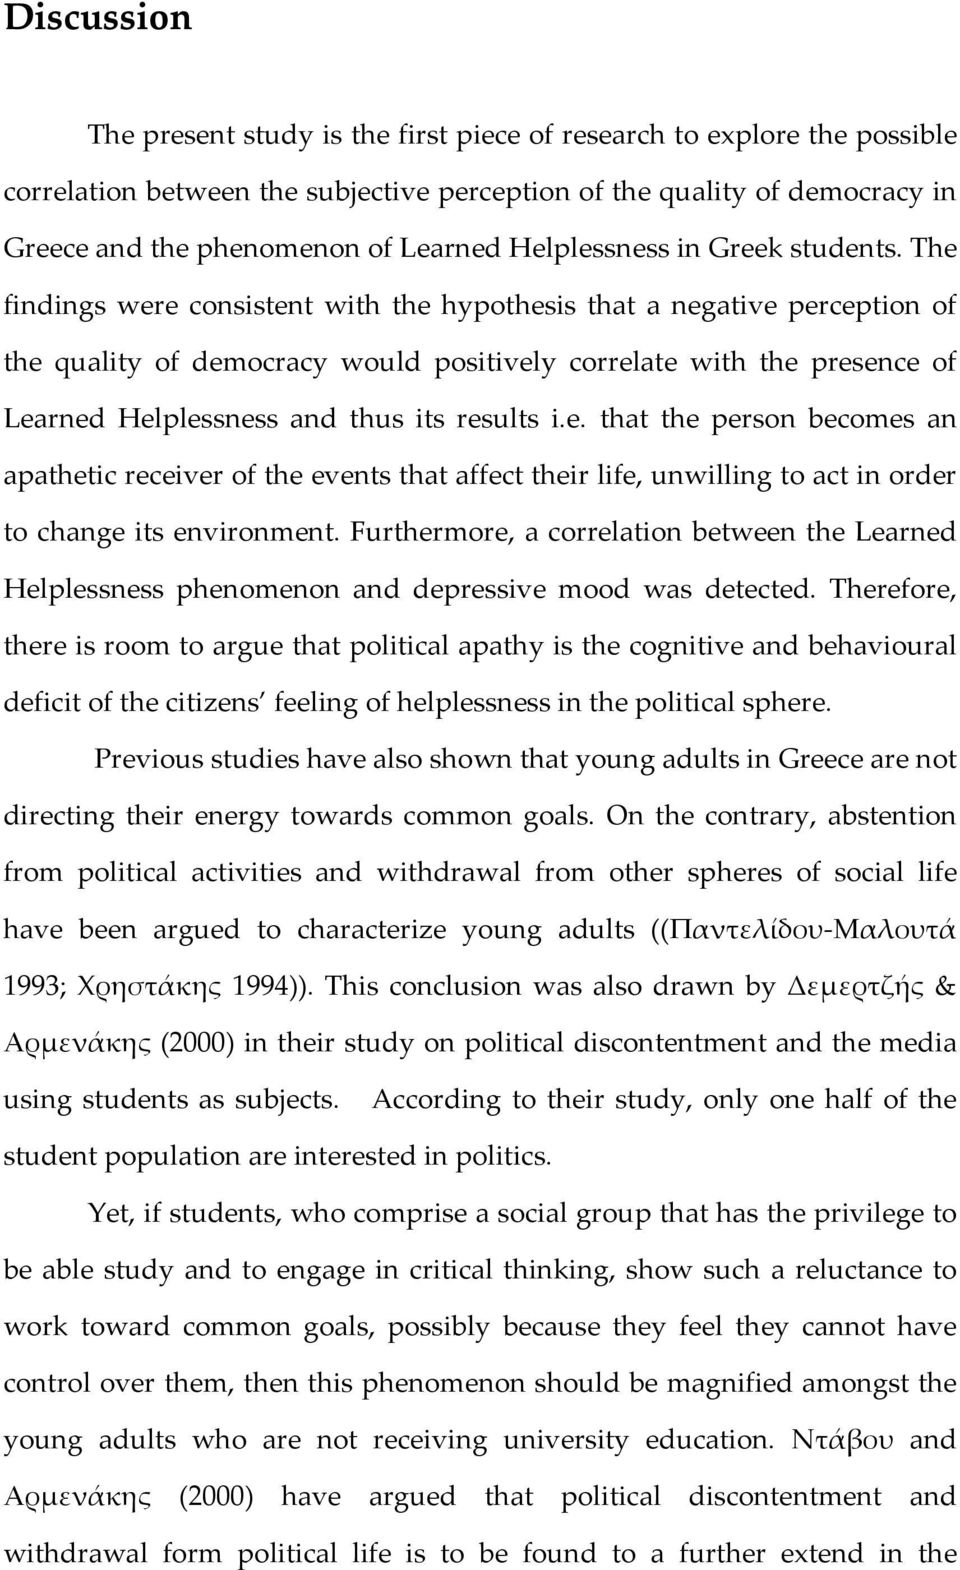 The findings were consistent with the hypothesis that a negative perception of the quality of democracy would positively correlate with the presence of Learned Helplessness and thus its results i.e. that the person becomes an apathetic receiver of the events that affect their life, unwilling to act in order to change its environment.